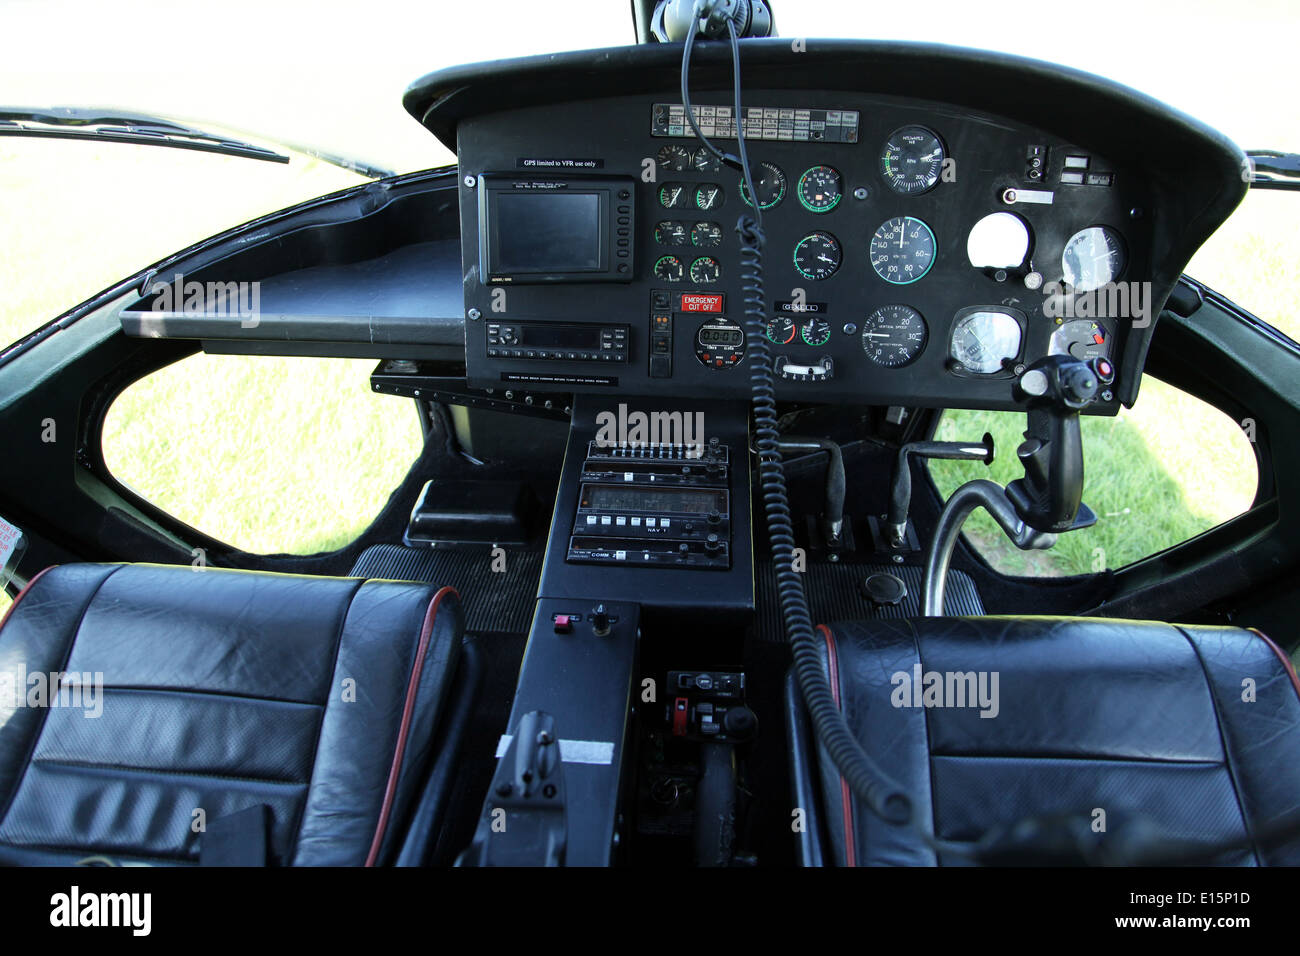 the cockpit controls of an Aerospatiale AS55 Twin Squirrel helicopter aircraft - Stock Image